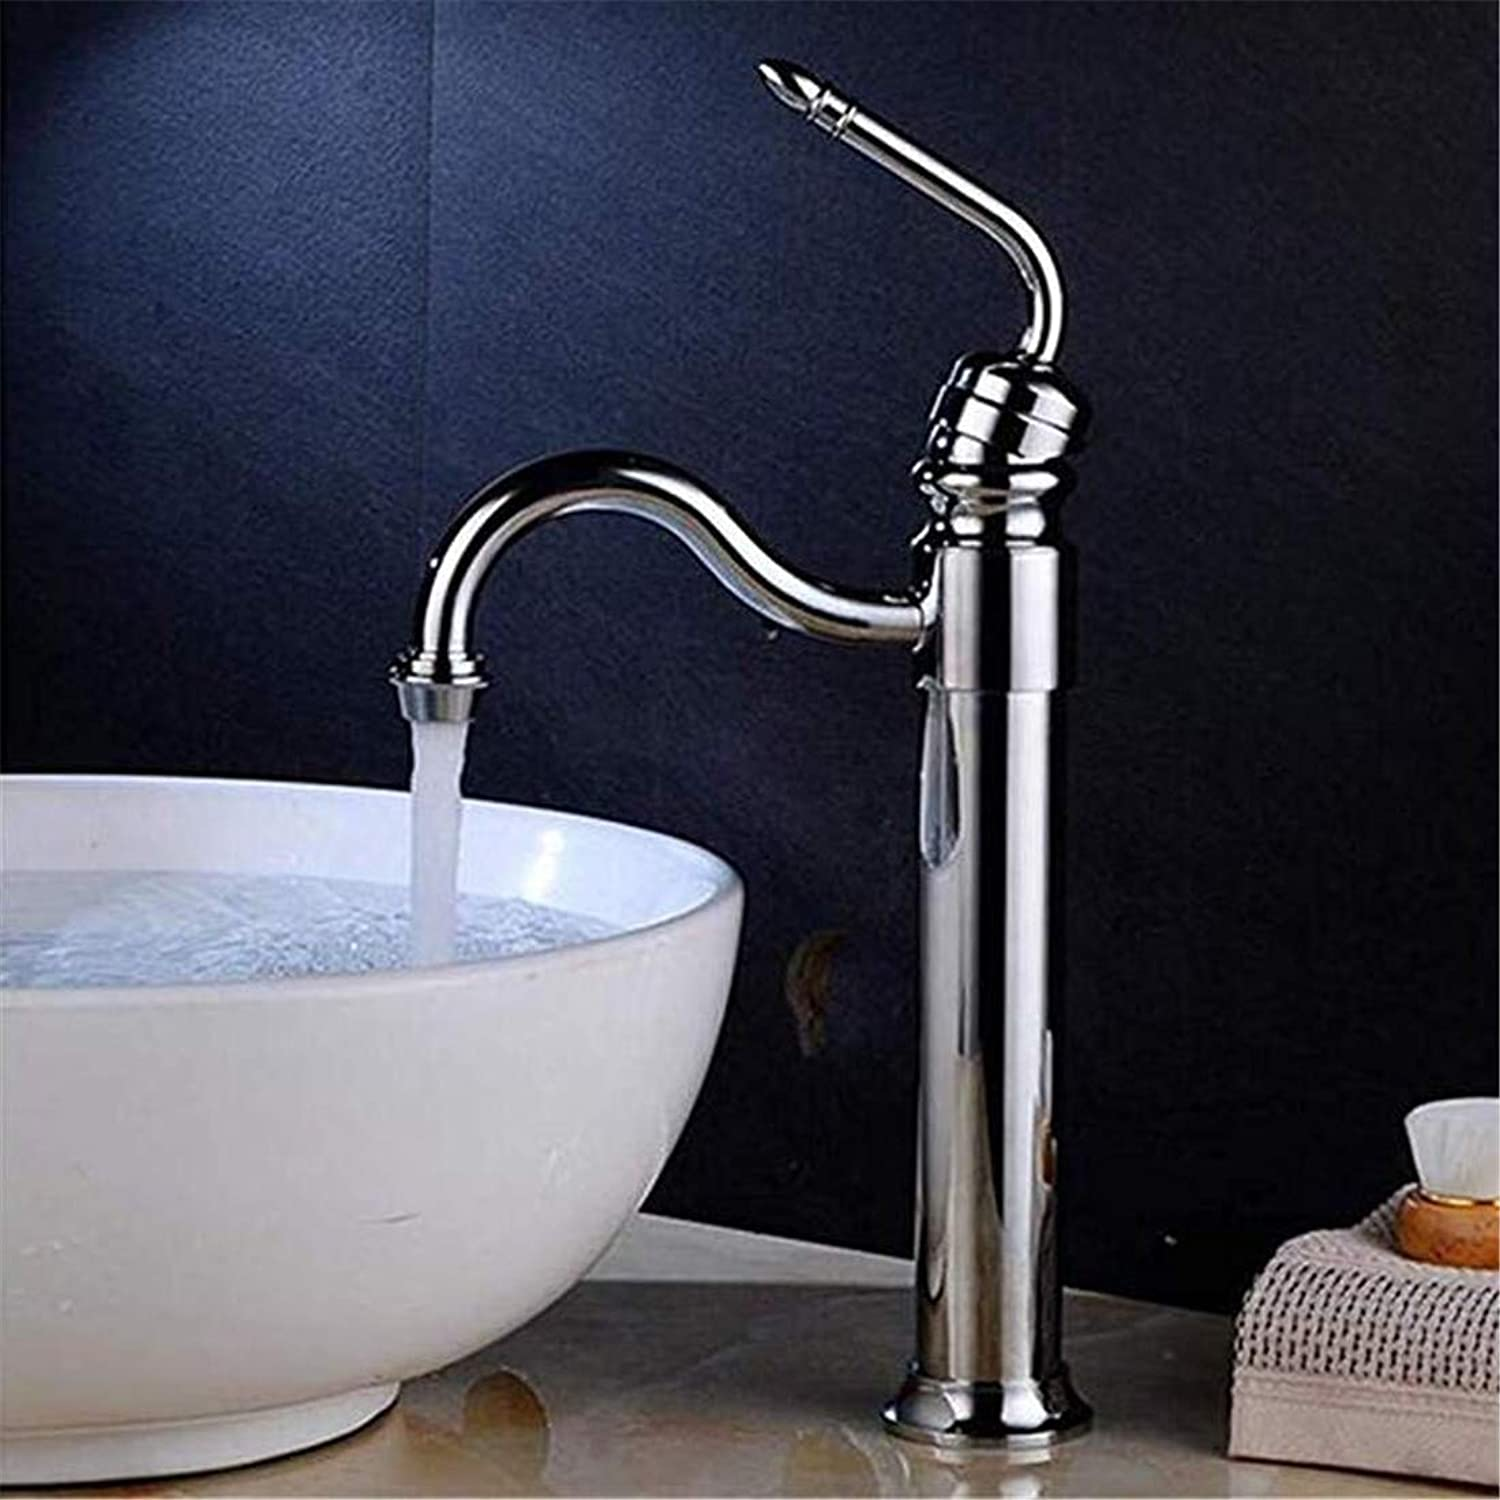 Luxury Modern Hot and Cold Faucet Vintage Platingchrome Basin Faucet Single Hole Hot and Cold Hoses Vessel Sink Water Taps